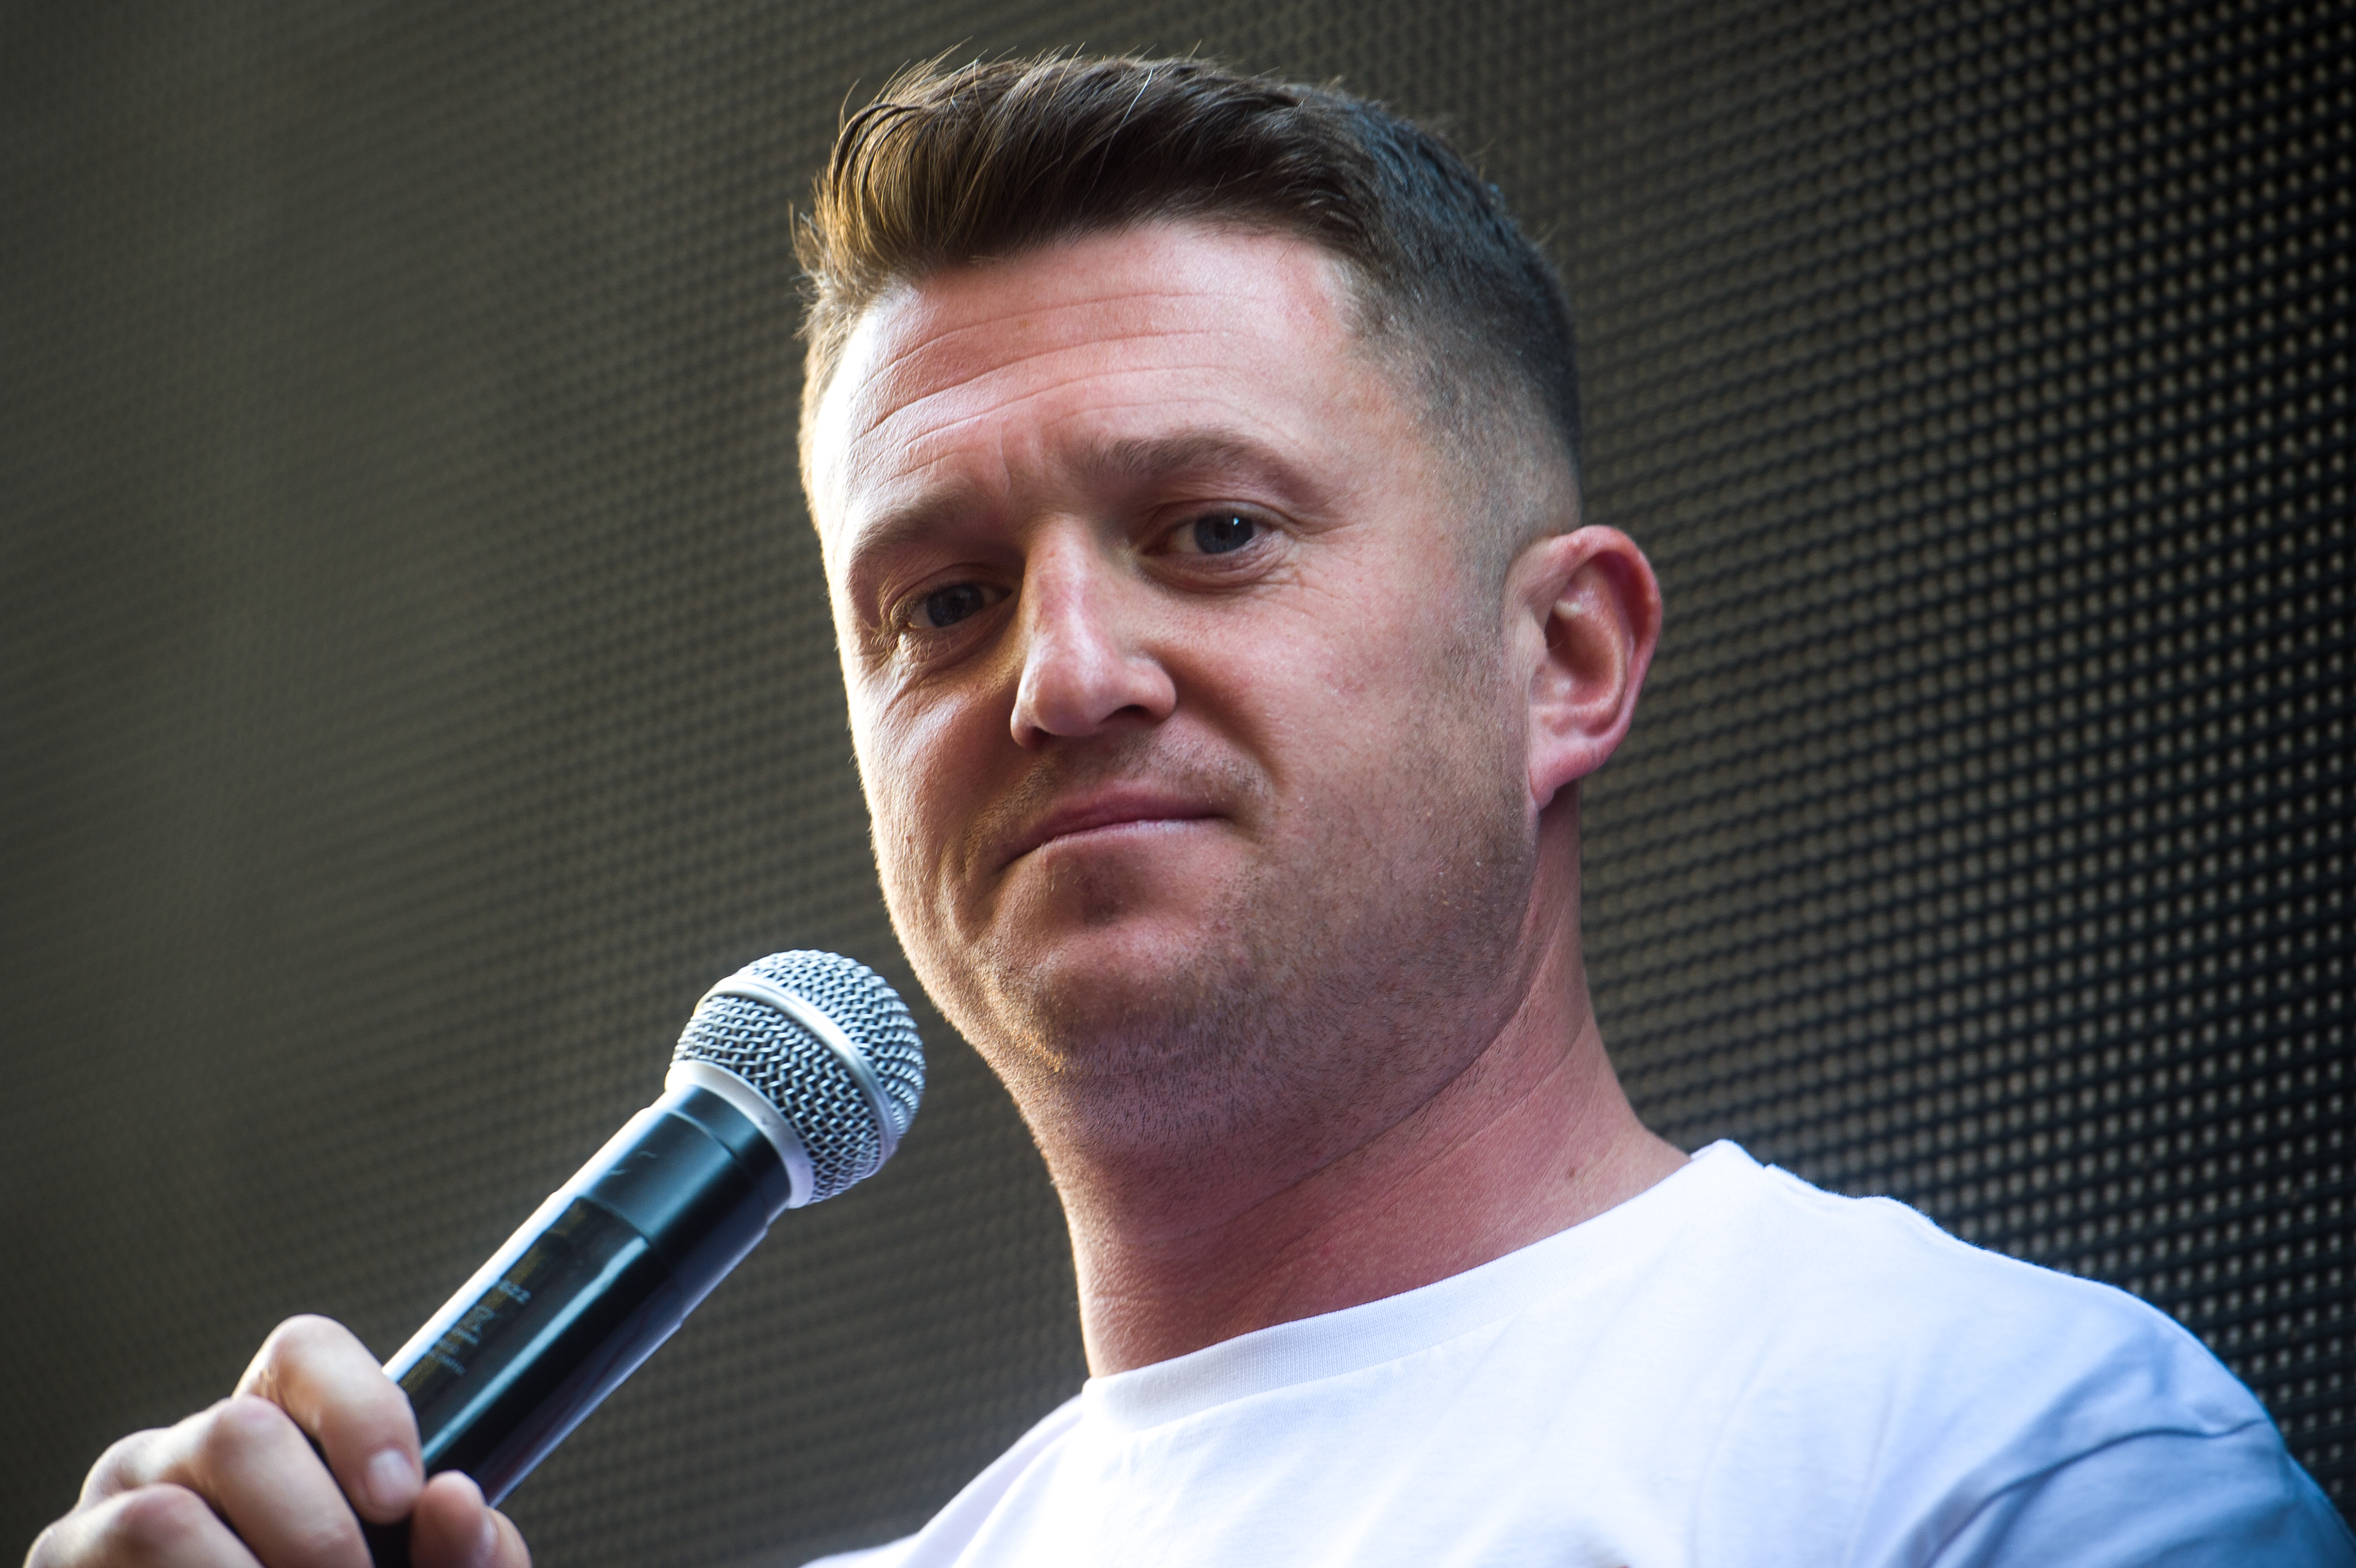 British far-right activist Tommy Robinson (real name Stephen Yaxley-Lennon) speaks to supporters outside the Old Bailey in London on May 14.